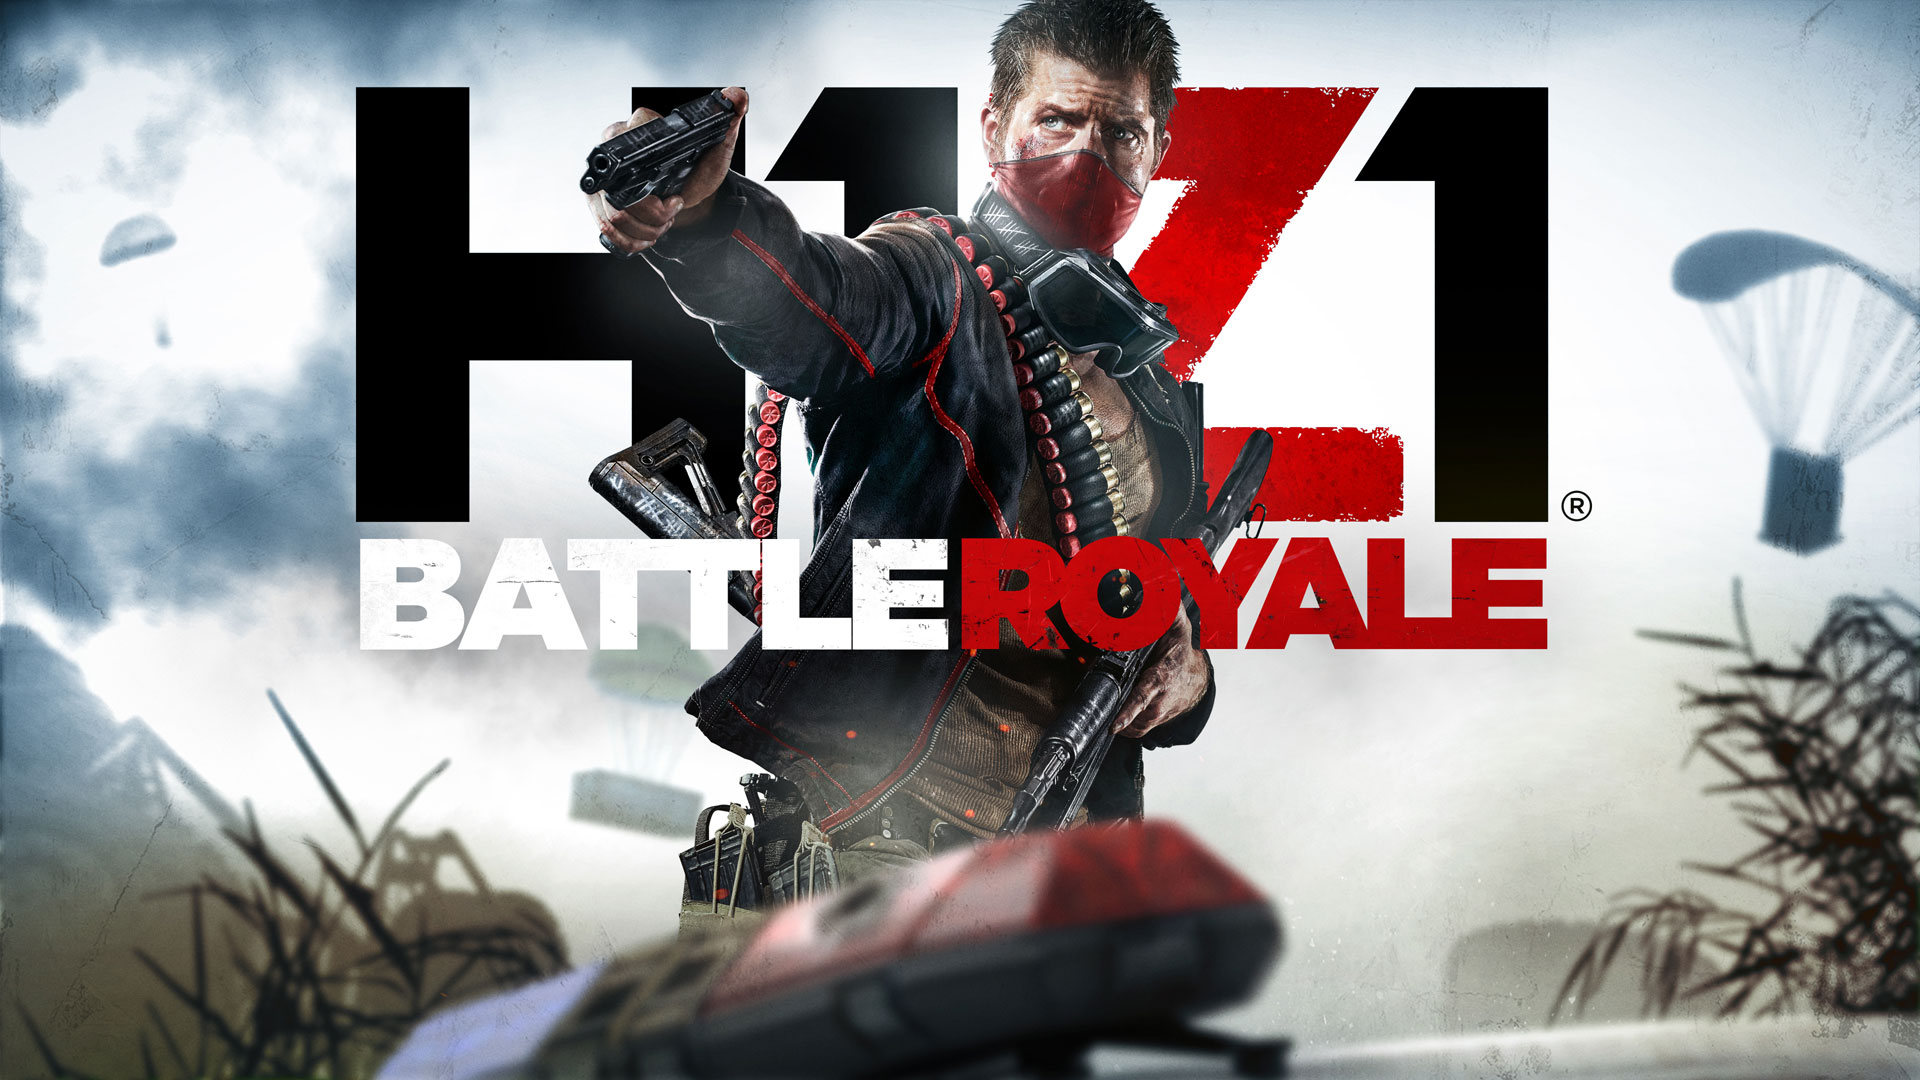 H1Z1 Comes to PS4 Next Month, Closed Beta Sign-Ups Live